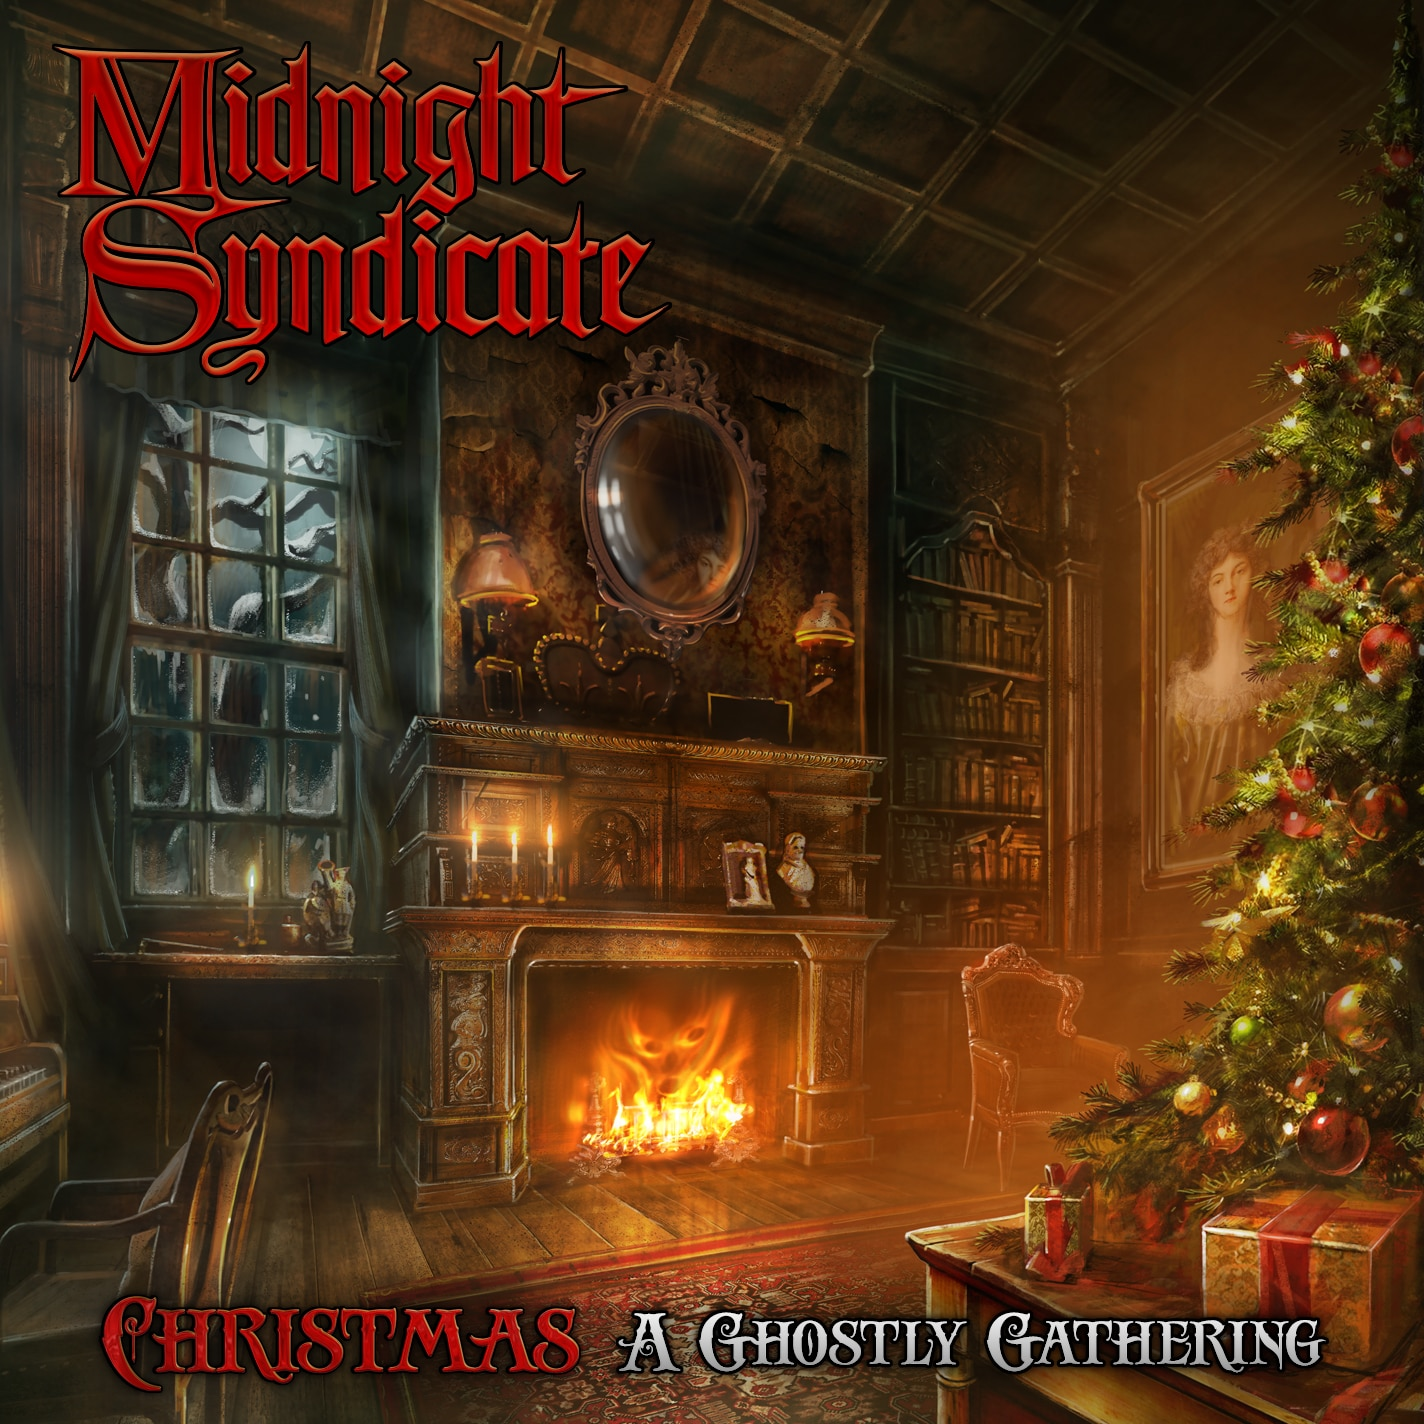 MidSyn Christmas cover - Midnight Syndicate - Christmas: A Ghostly Gathering (CD)